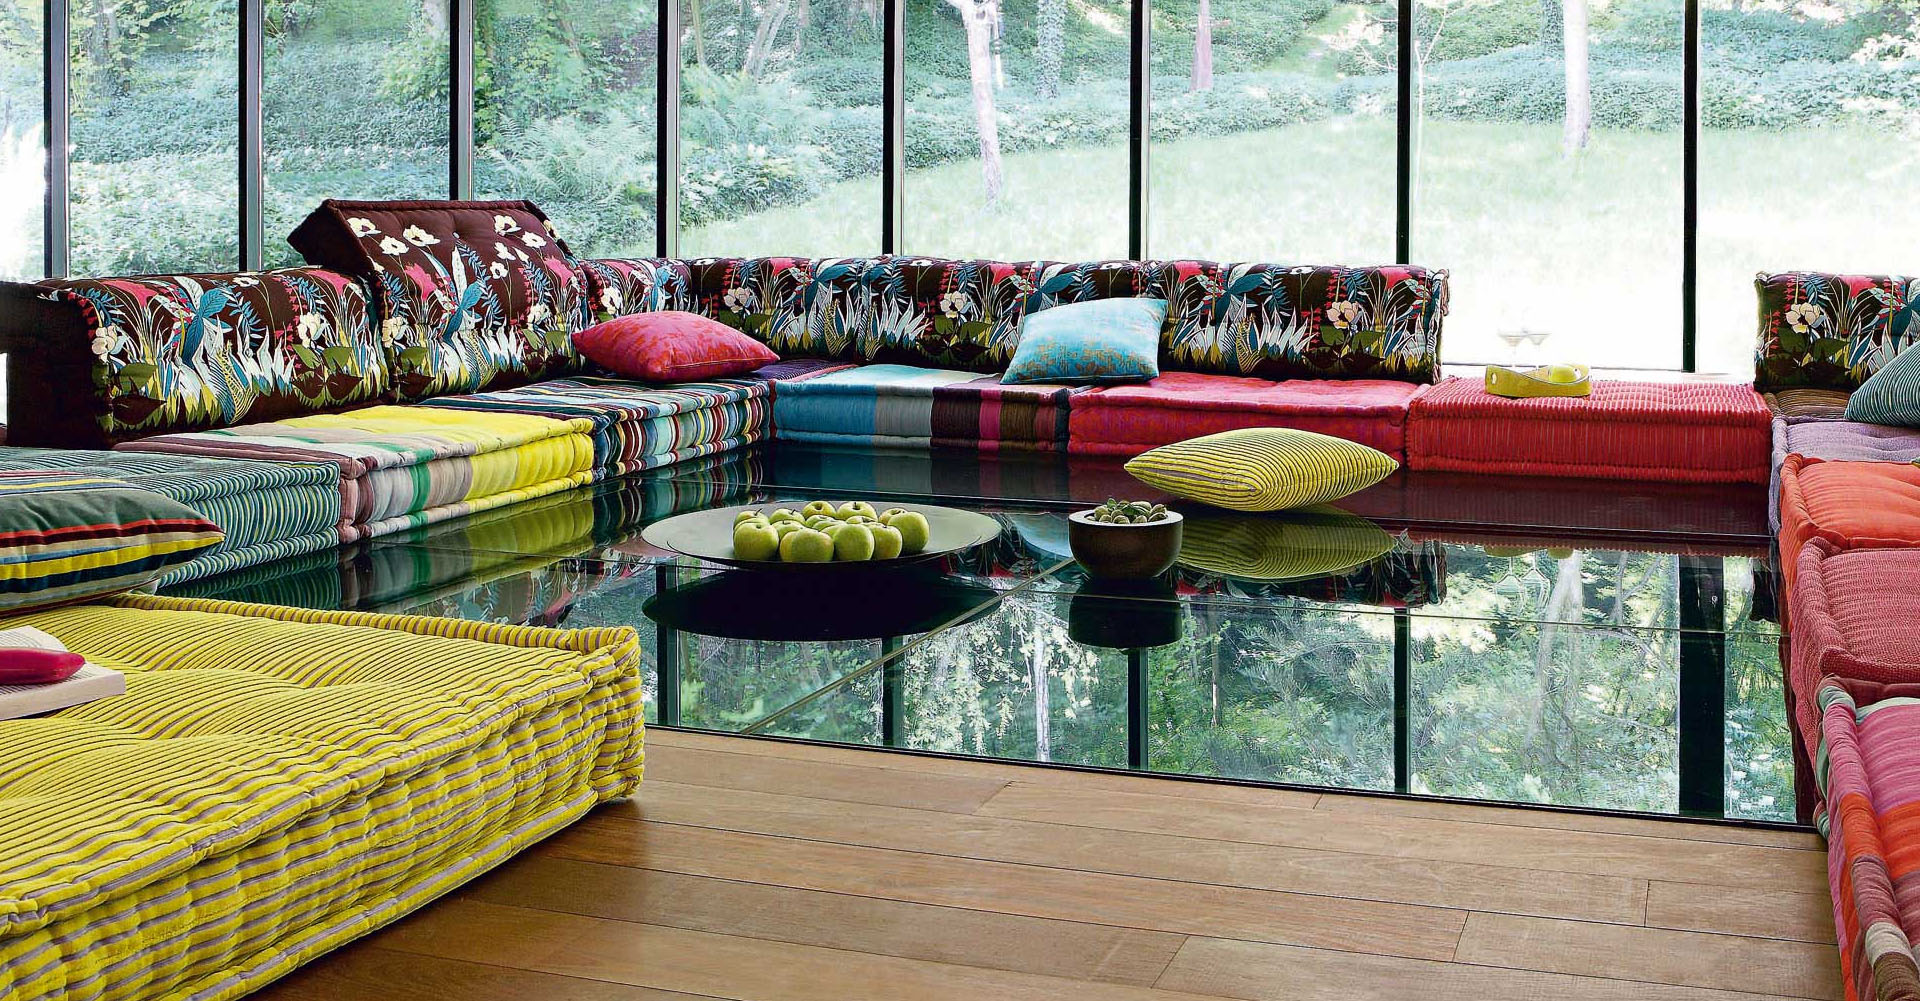 Banquette Roche Bobois Roche Bobois Stylish And Functional Mah Jong Modular Sofas